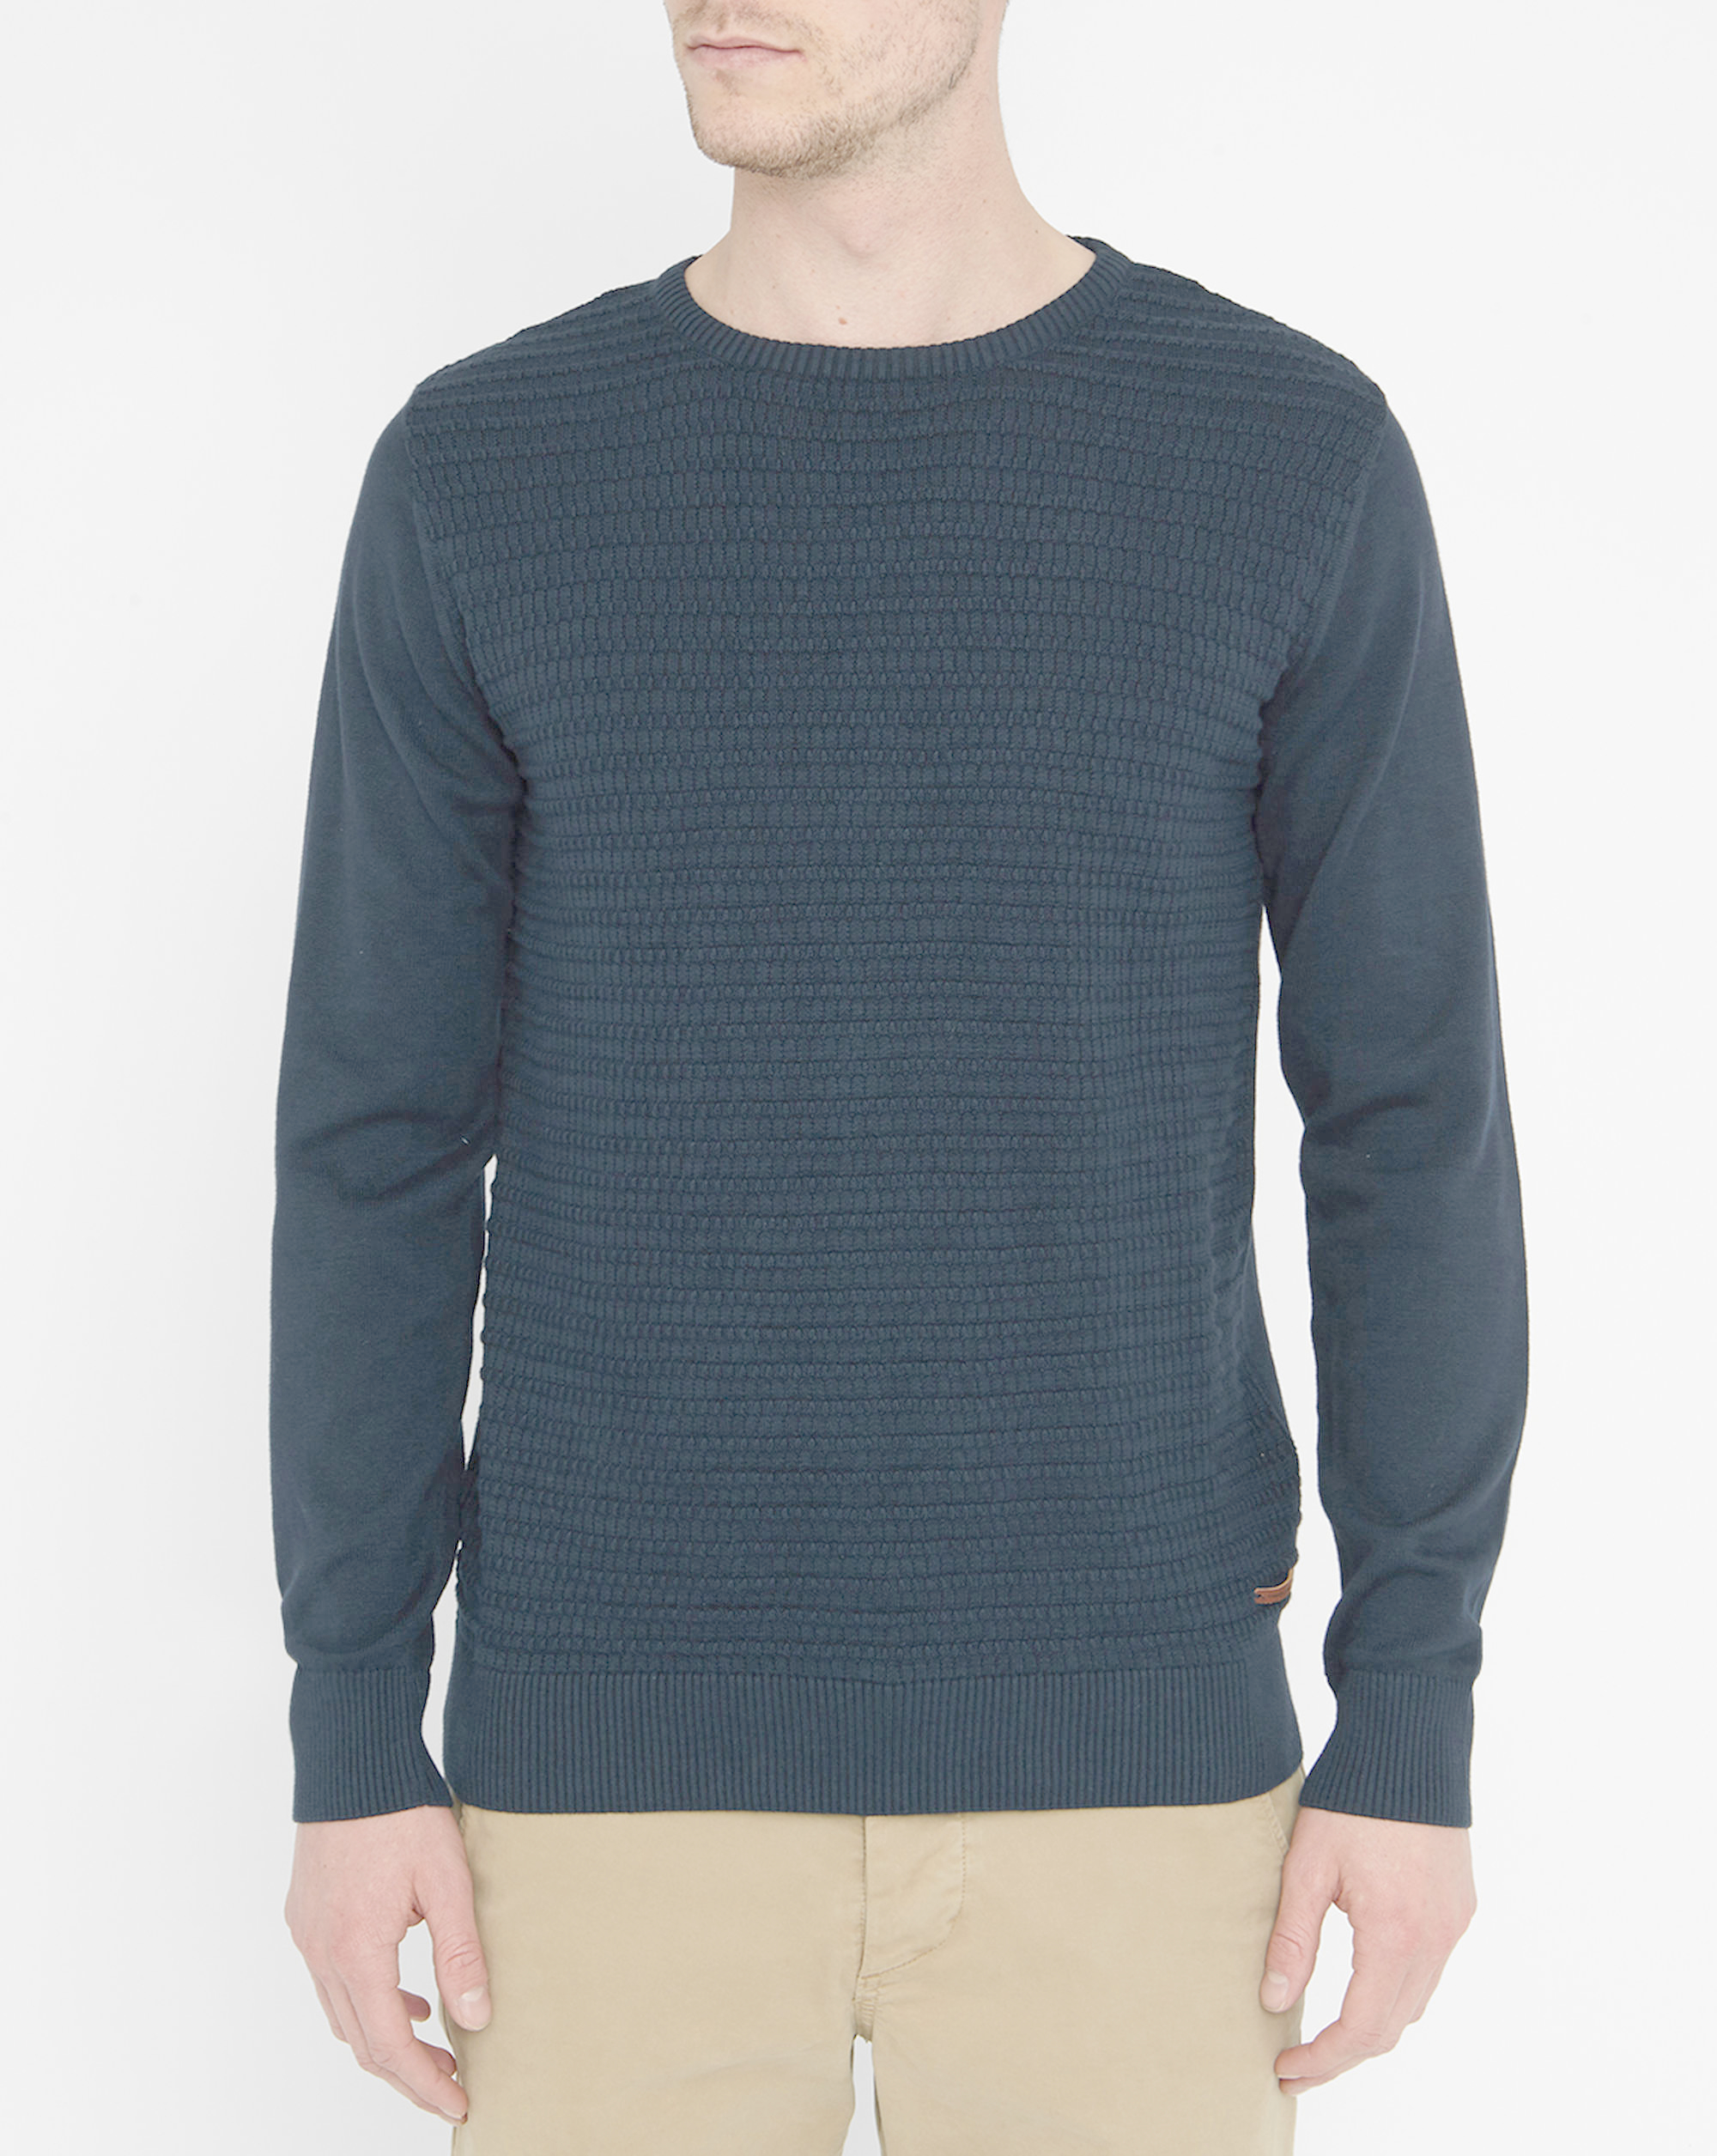 knowledge cotton apparel navy textured organic cotton round neck sweater in black for men lyst. Black Bedroom Furniture Sets. Home Design Ideas